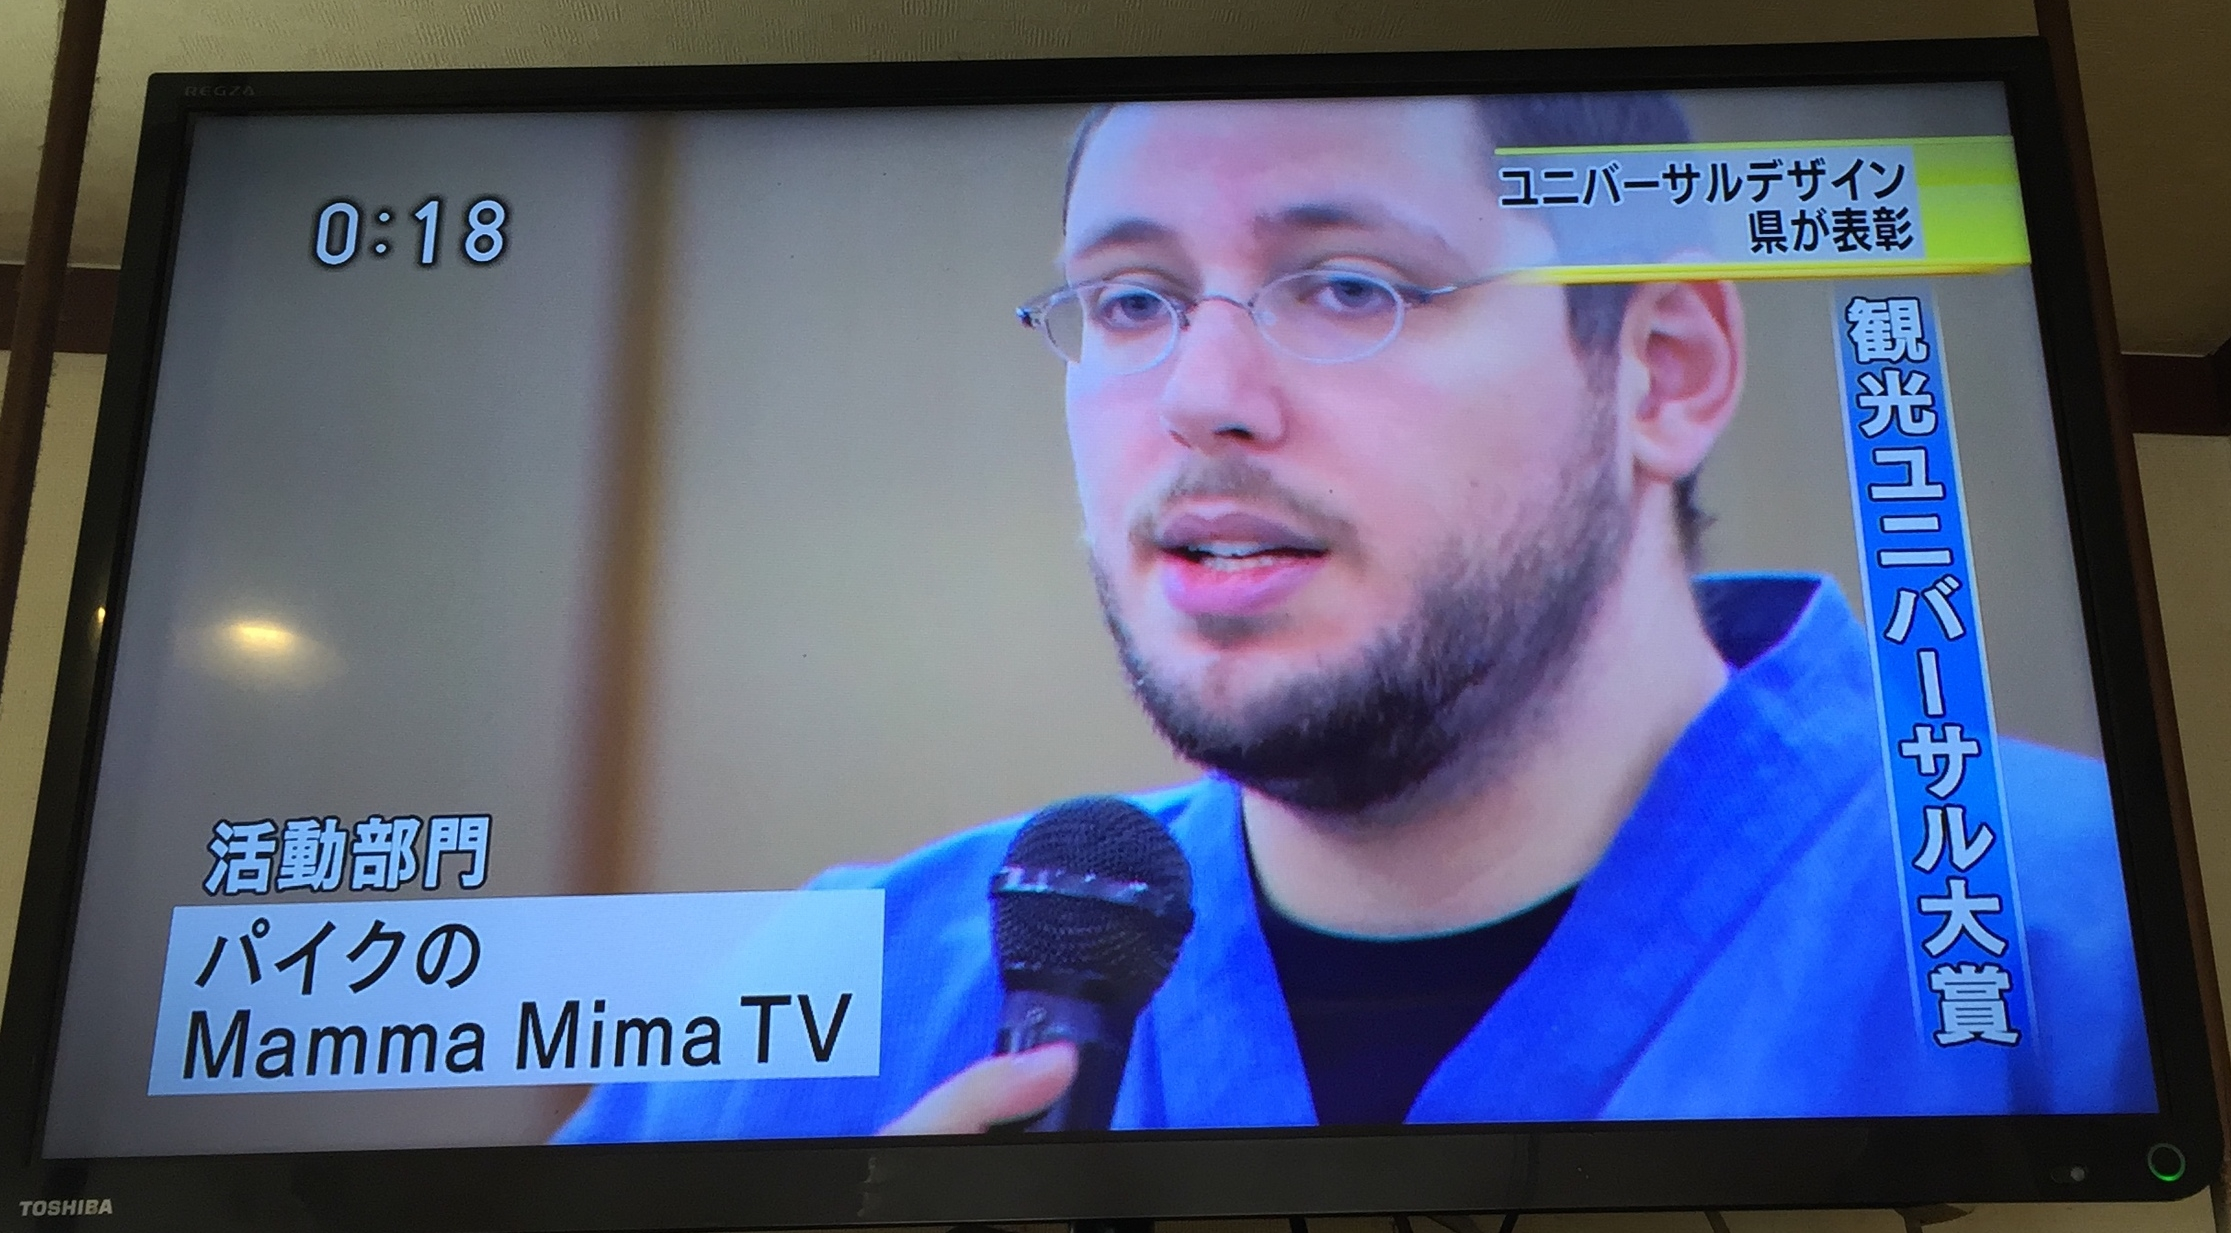 Featured on the local NHK news broadcast.